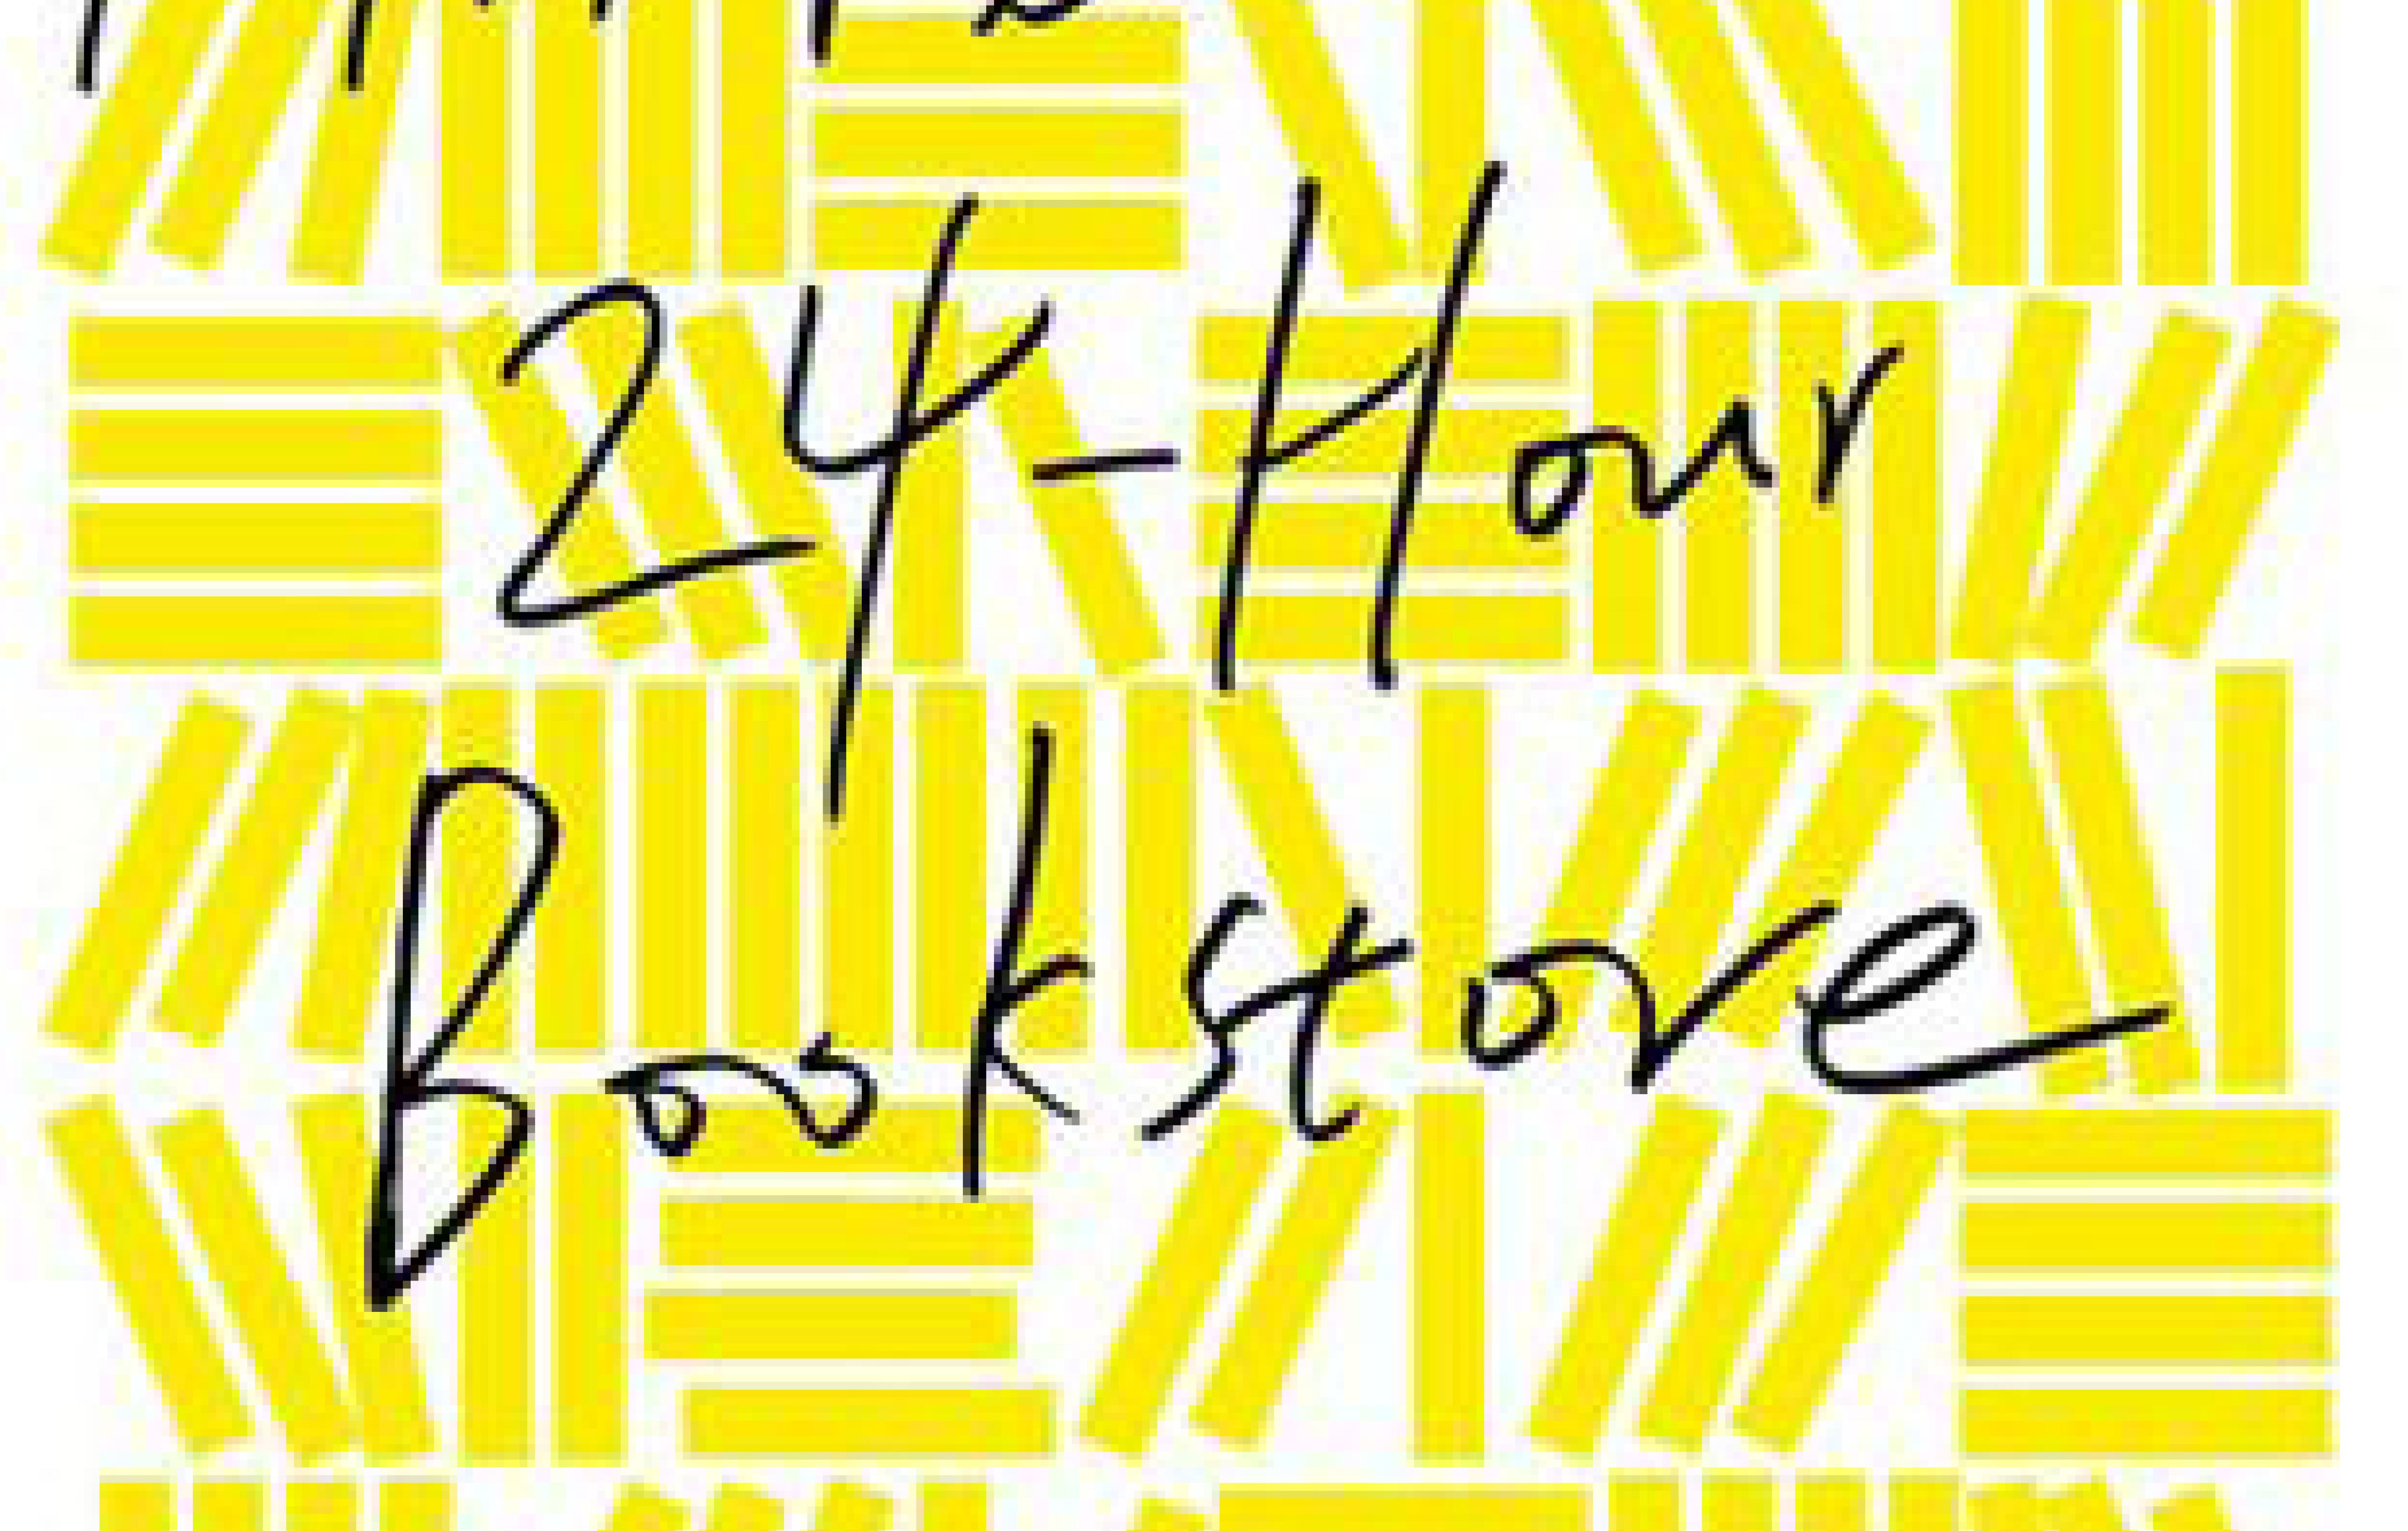 24 hour bookstore